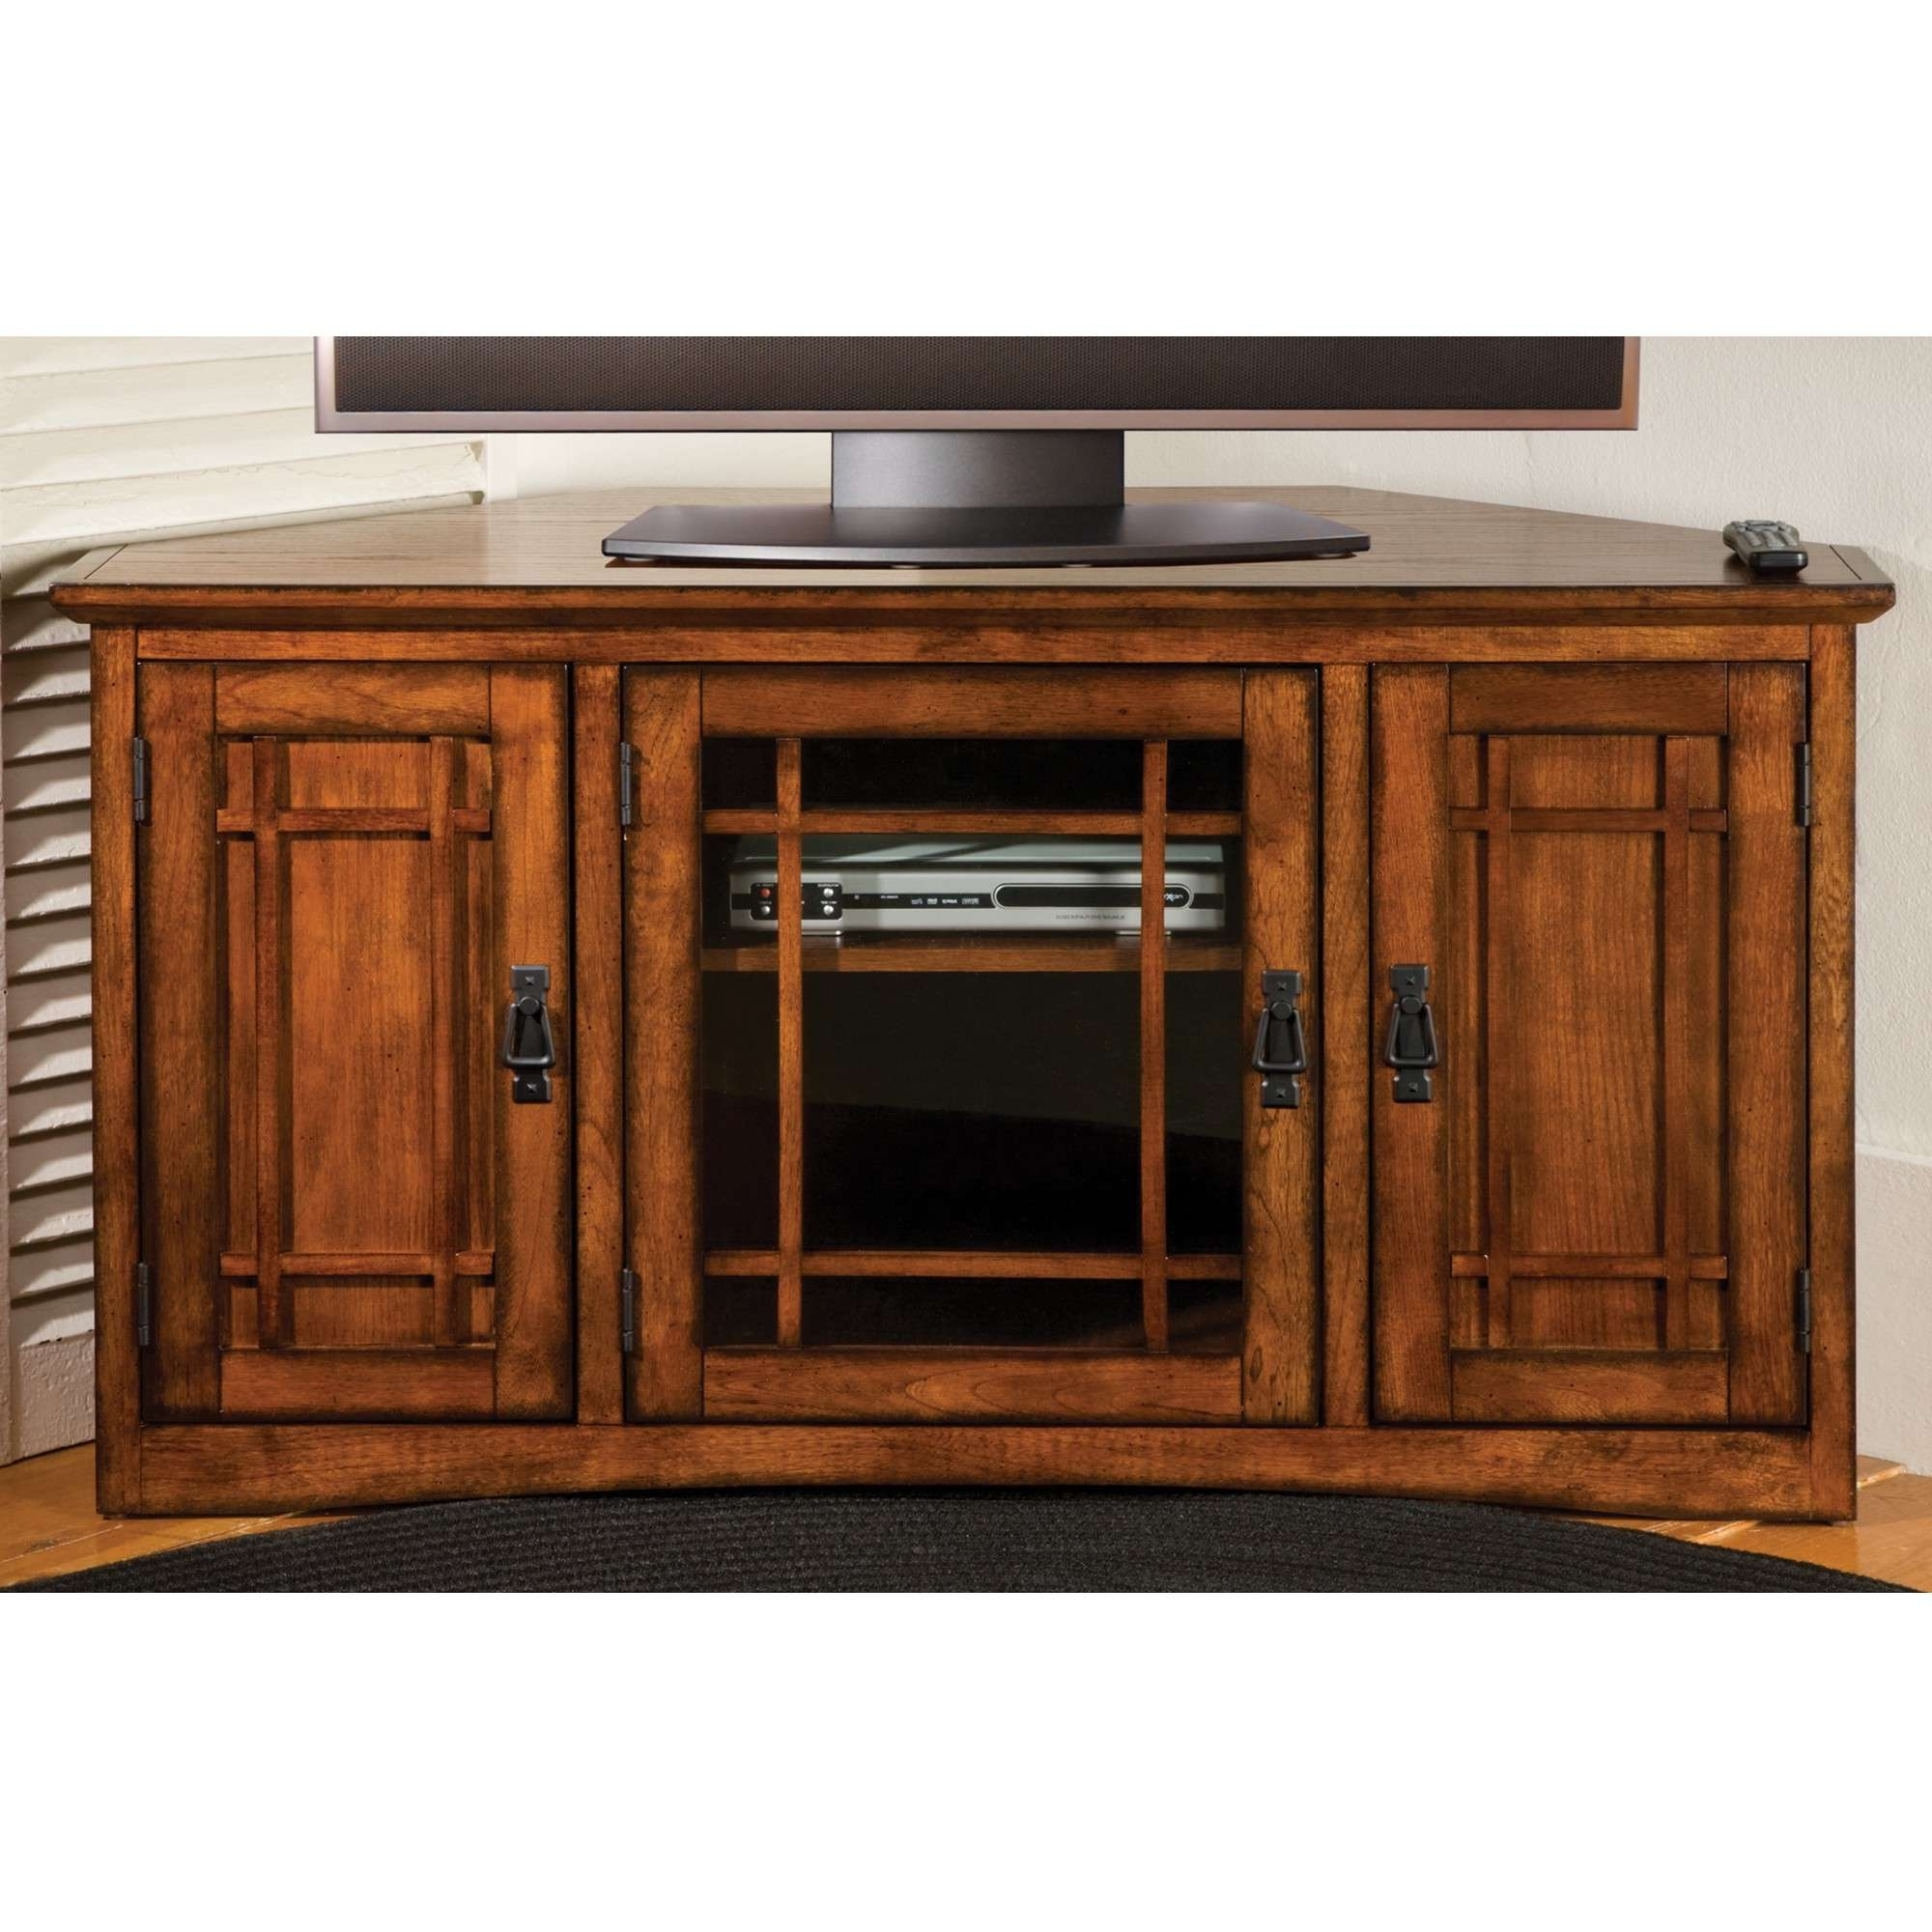 Awesome Corner Tv Cabinet With Doors For Your Lovely Home With Wooden Tv Stands With Glass Doors (View 1 of 15)